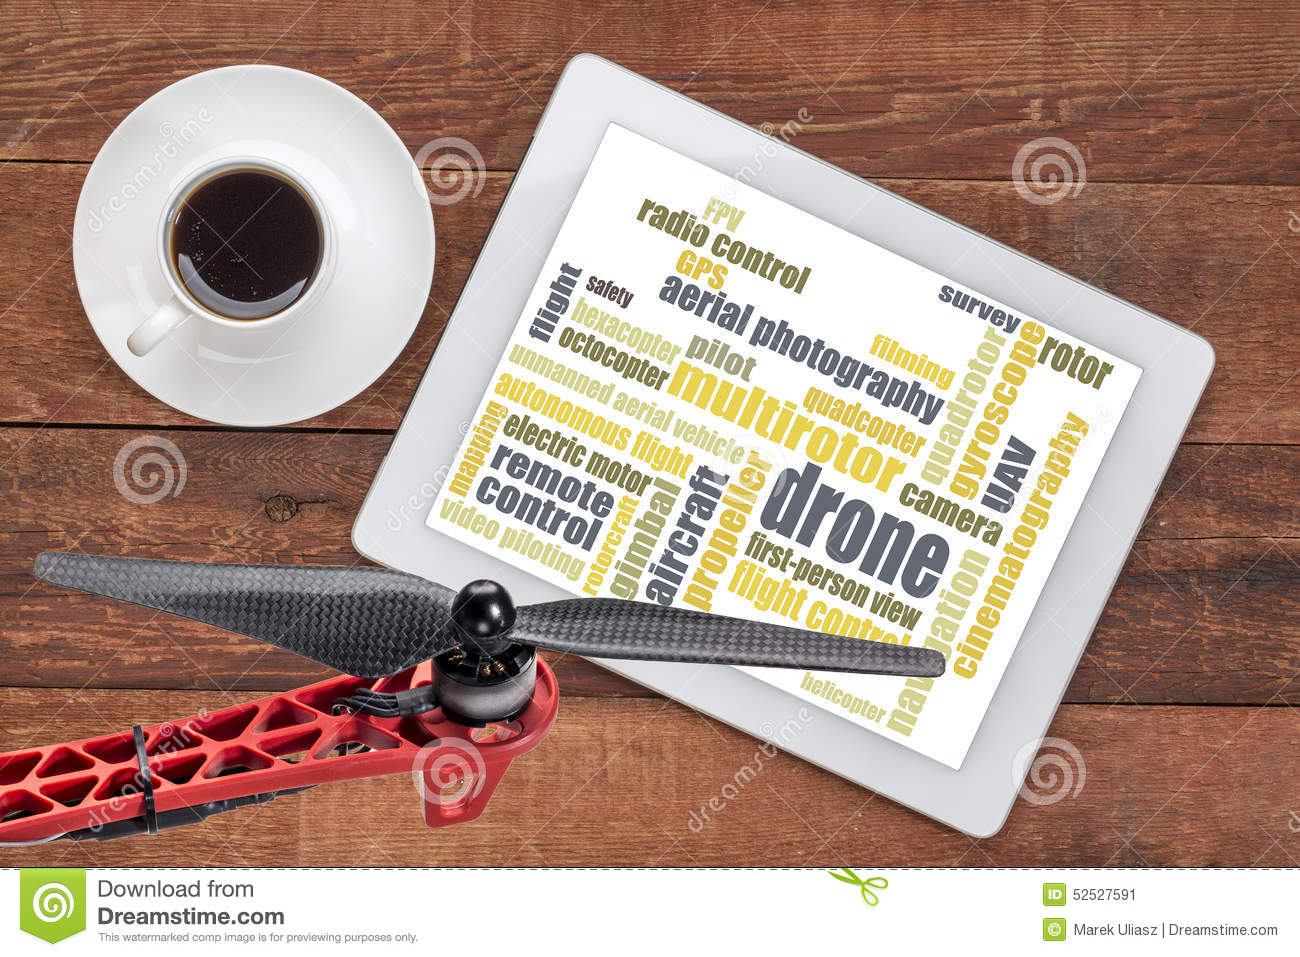 Drone word cloud on tablet